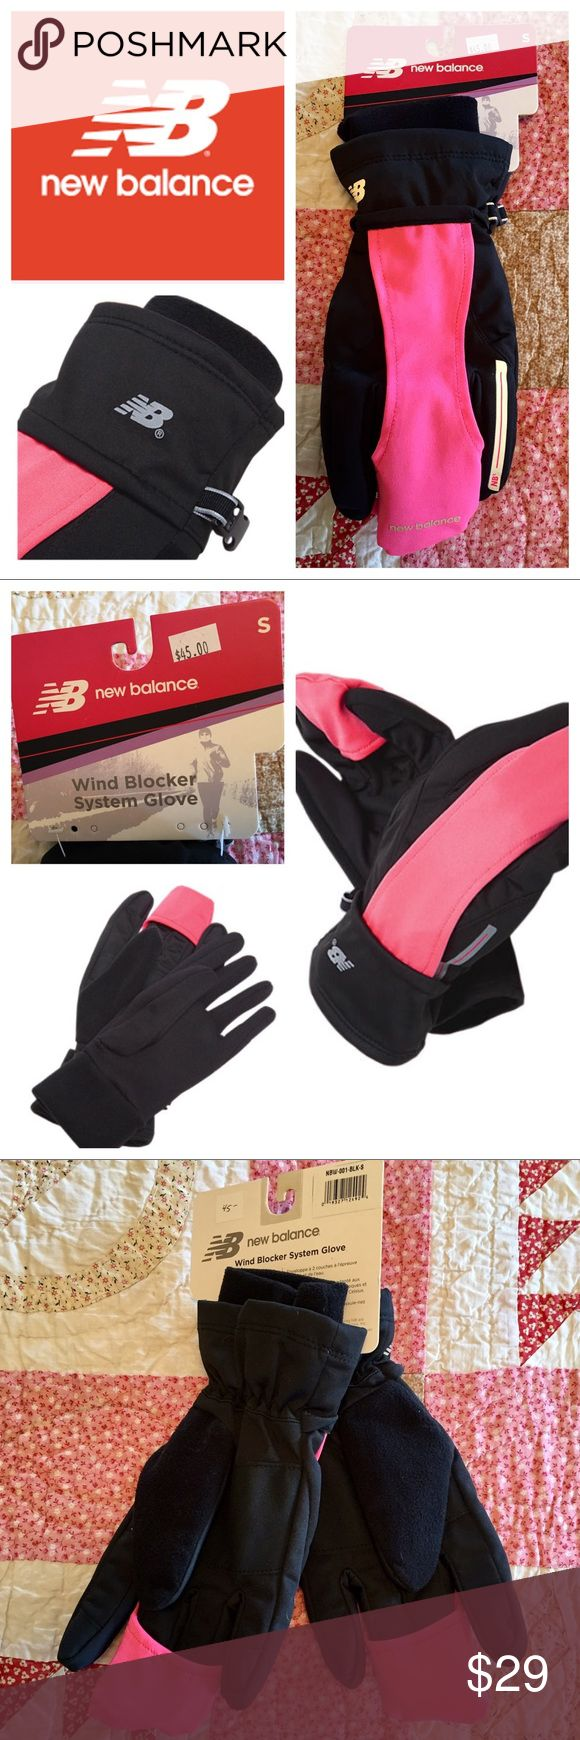 """New Balance Wind Blocker System Gloves NWT pink! Such great gloves! Brand new with tag still attached, New Balance Wind Blocker gloves, complete with nose wipe! Black with hot pink trim. Women's size small. Measures 10 1/2"""" from cuff edge to top of middle finger of gloves. Perfect condition! New Balance Accessories Gloves & Mittens"""